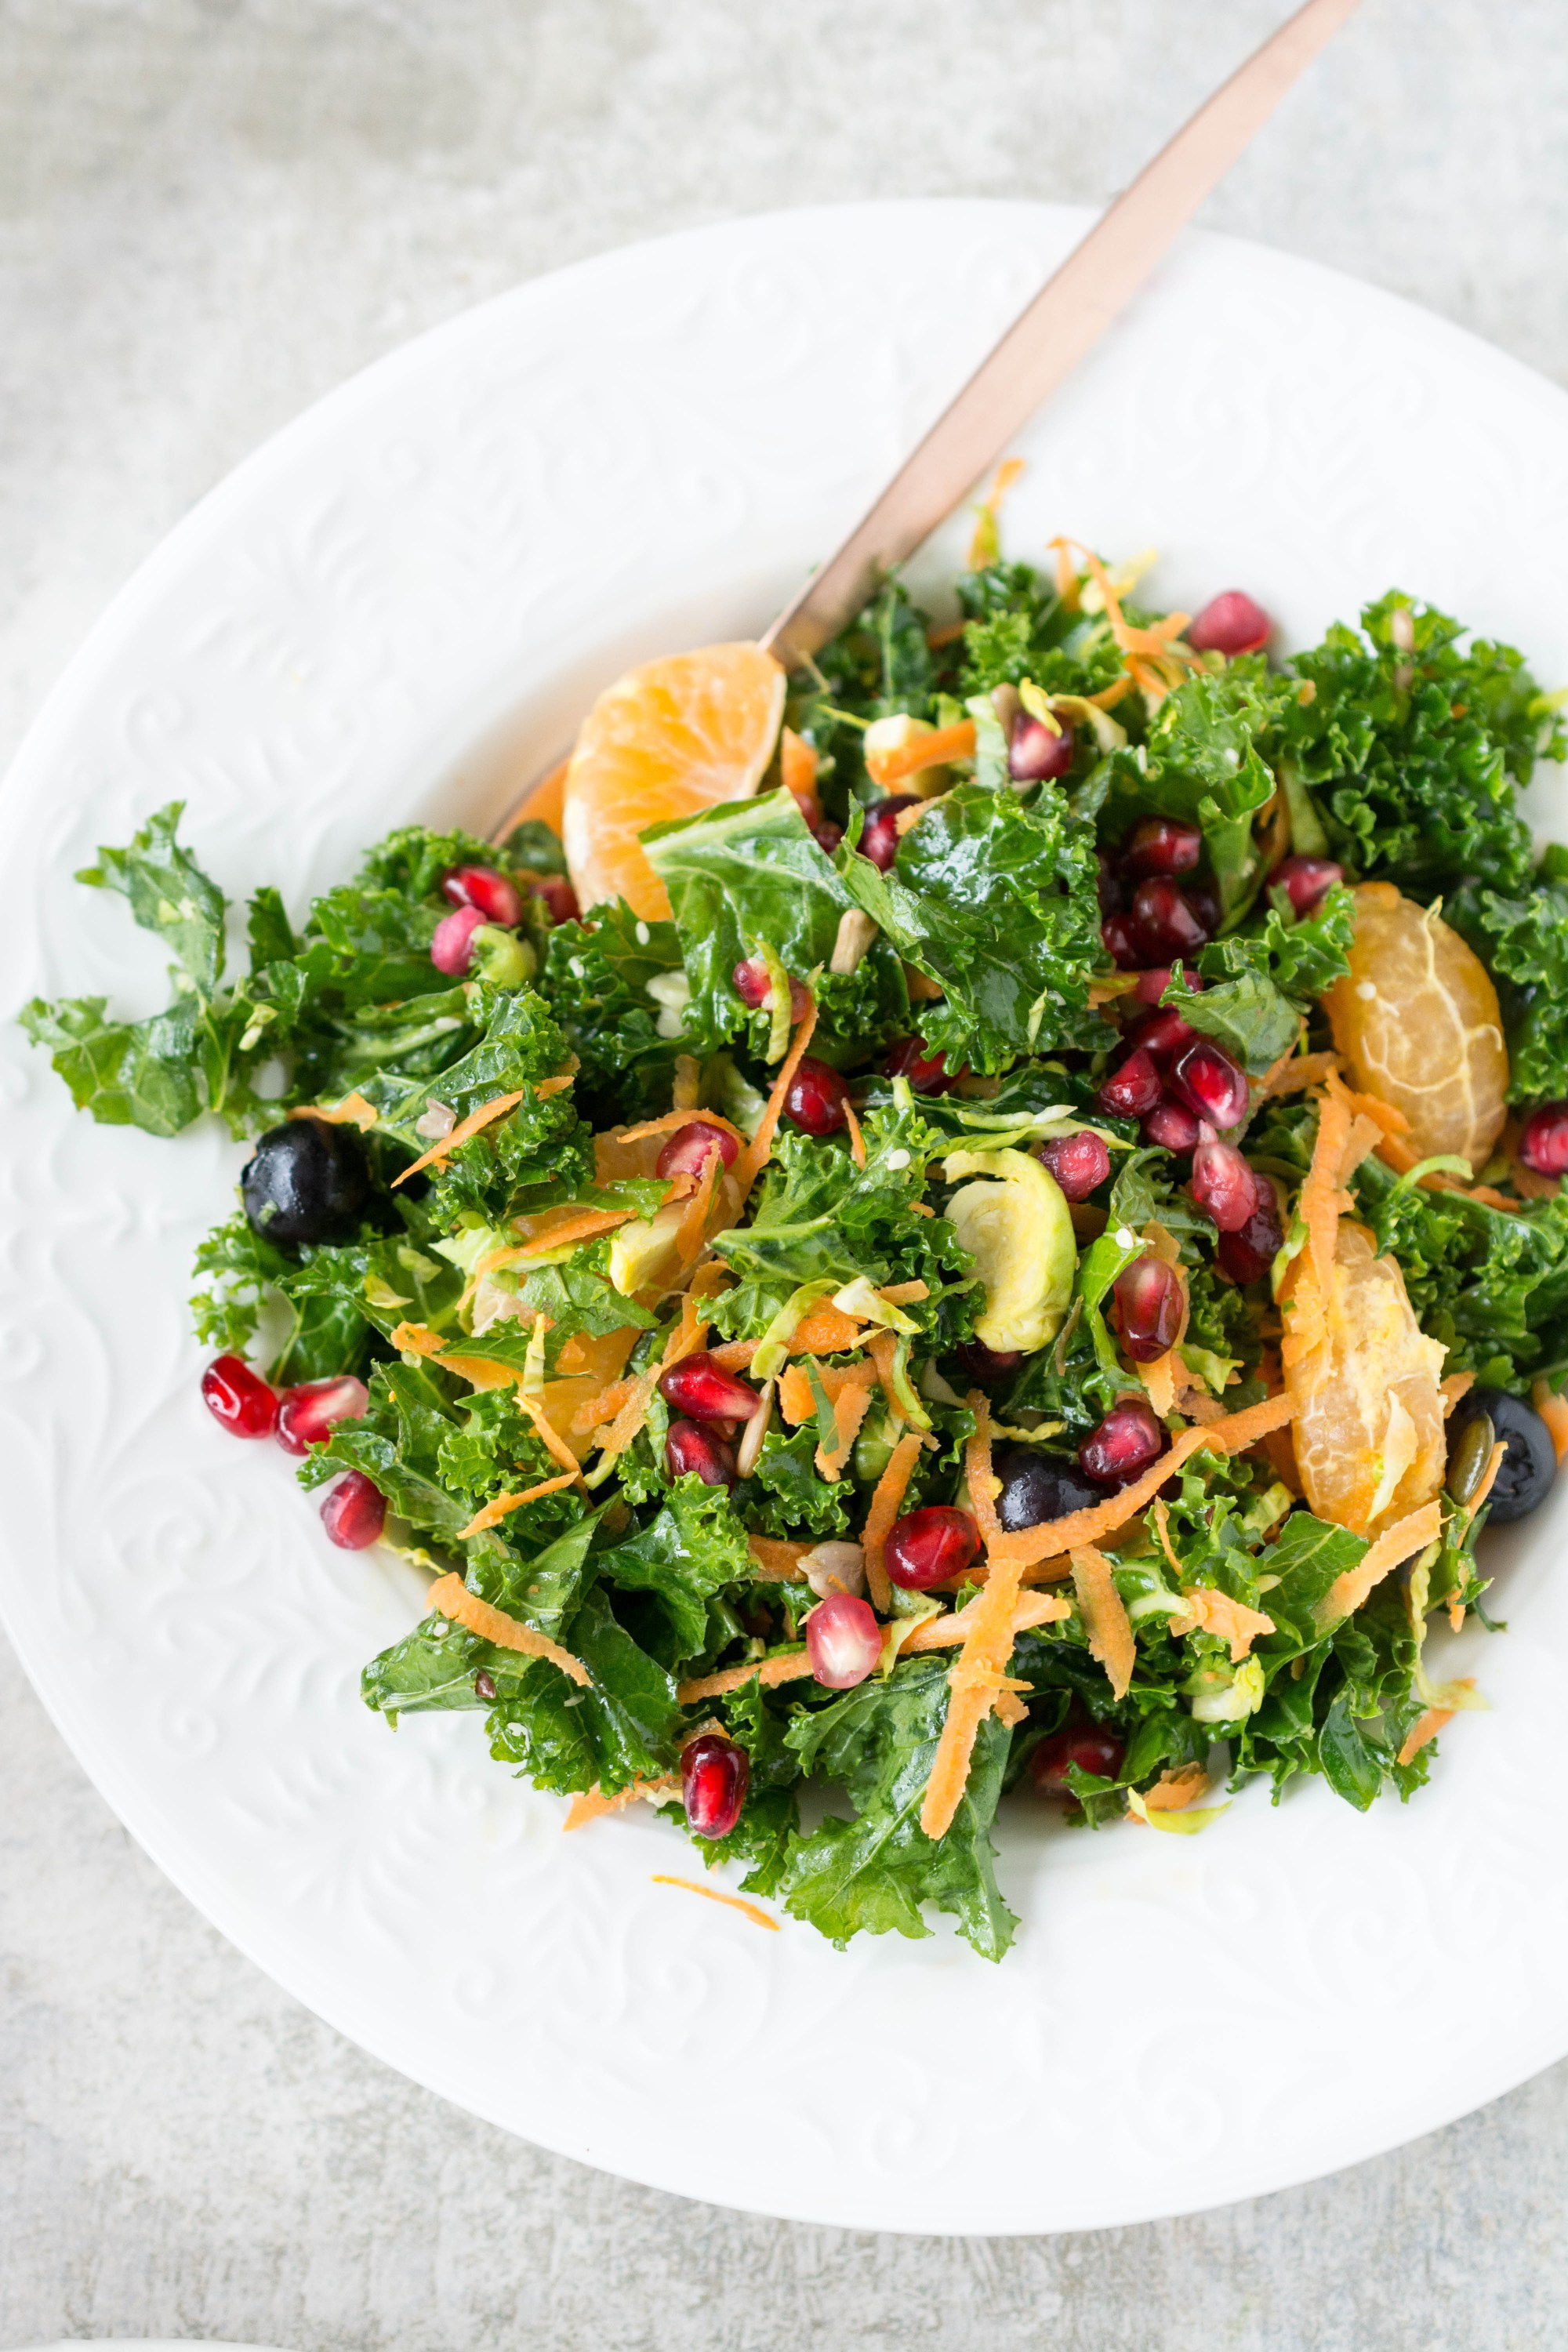 Kale clementine winter salad